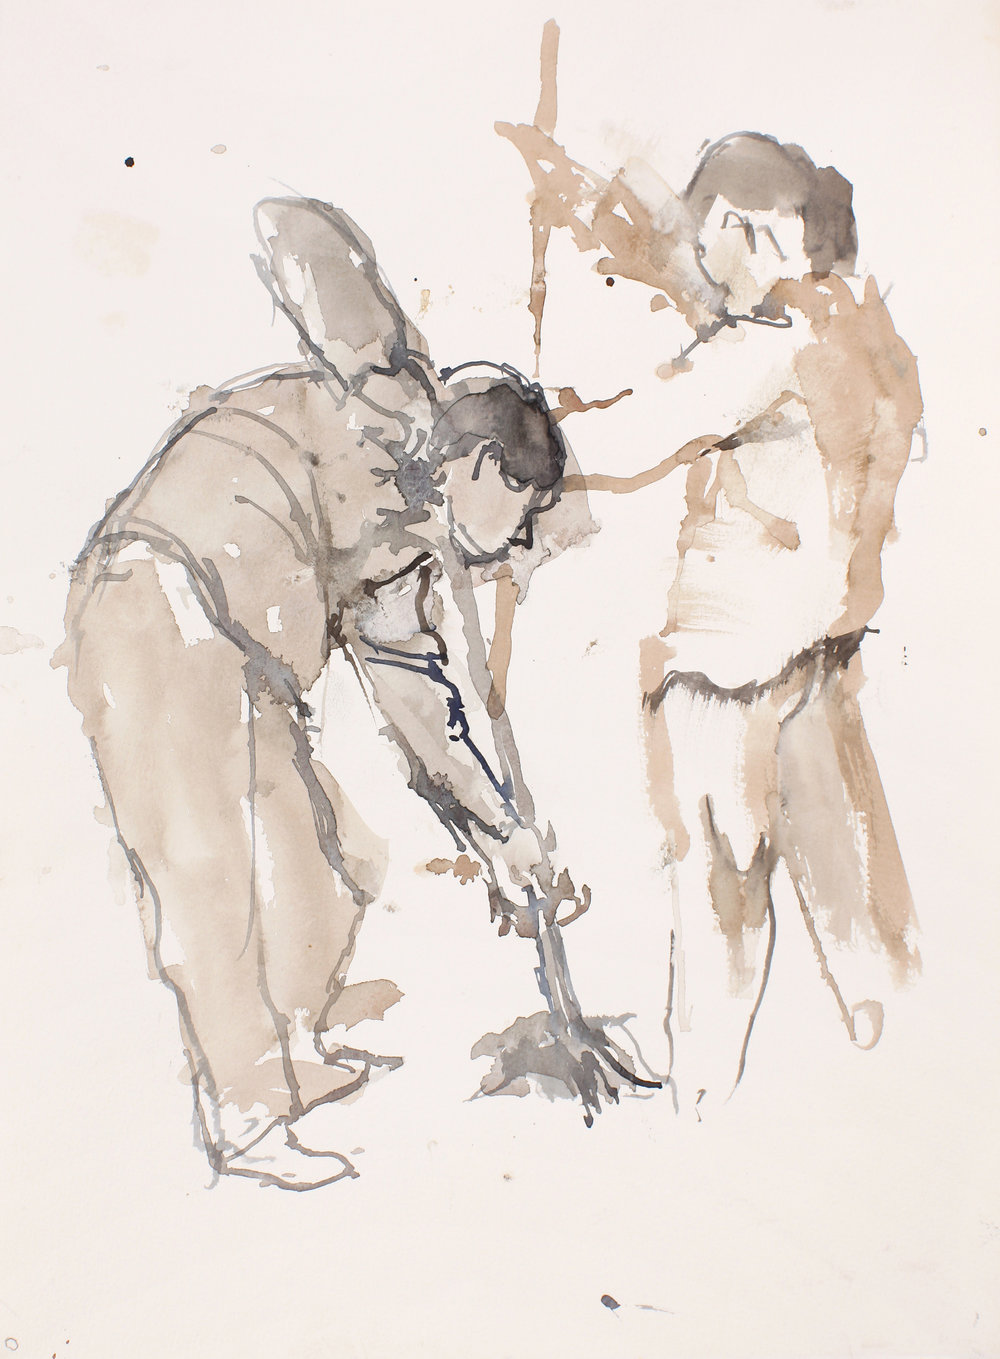 Study for Cleaners with Two Figures